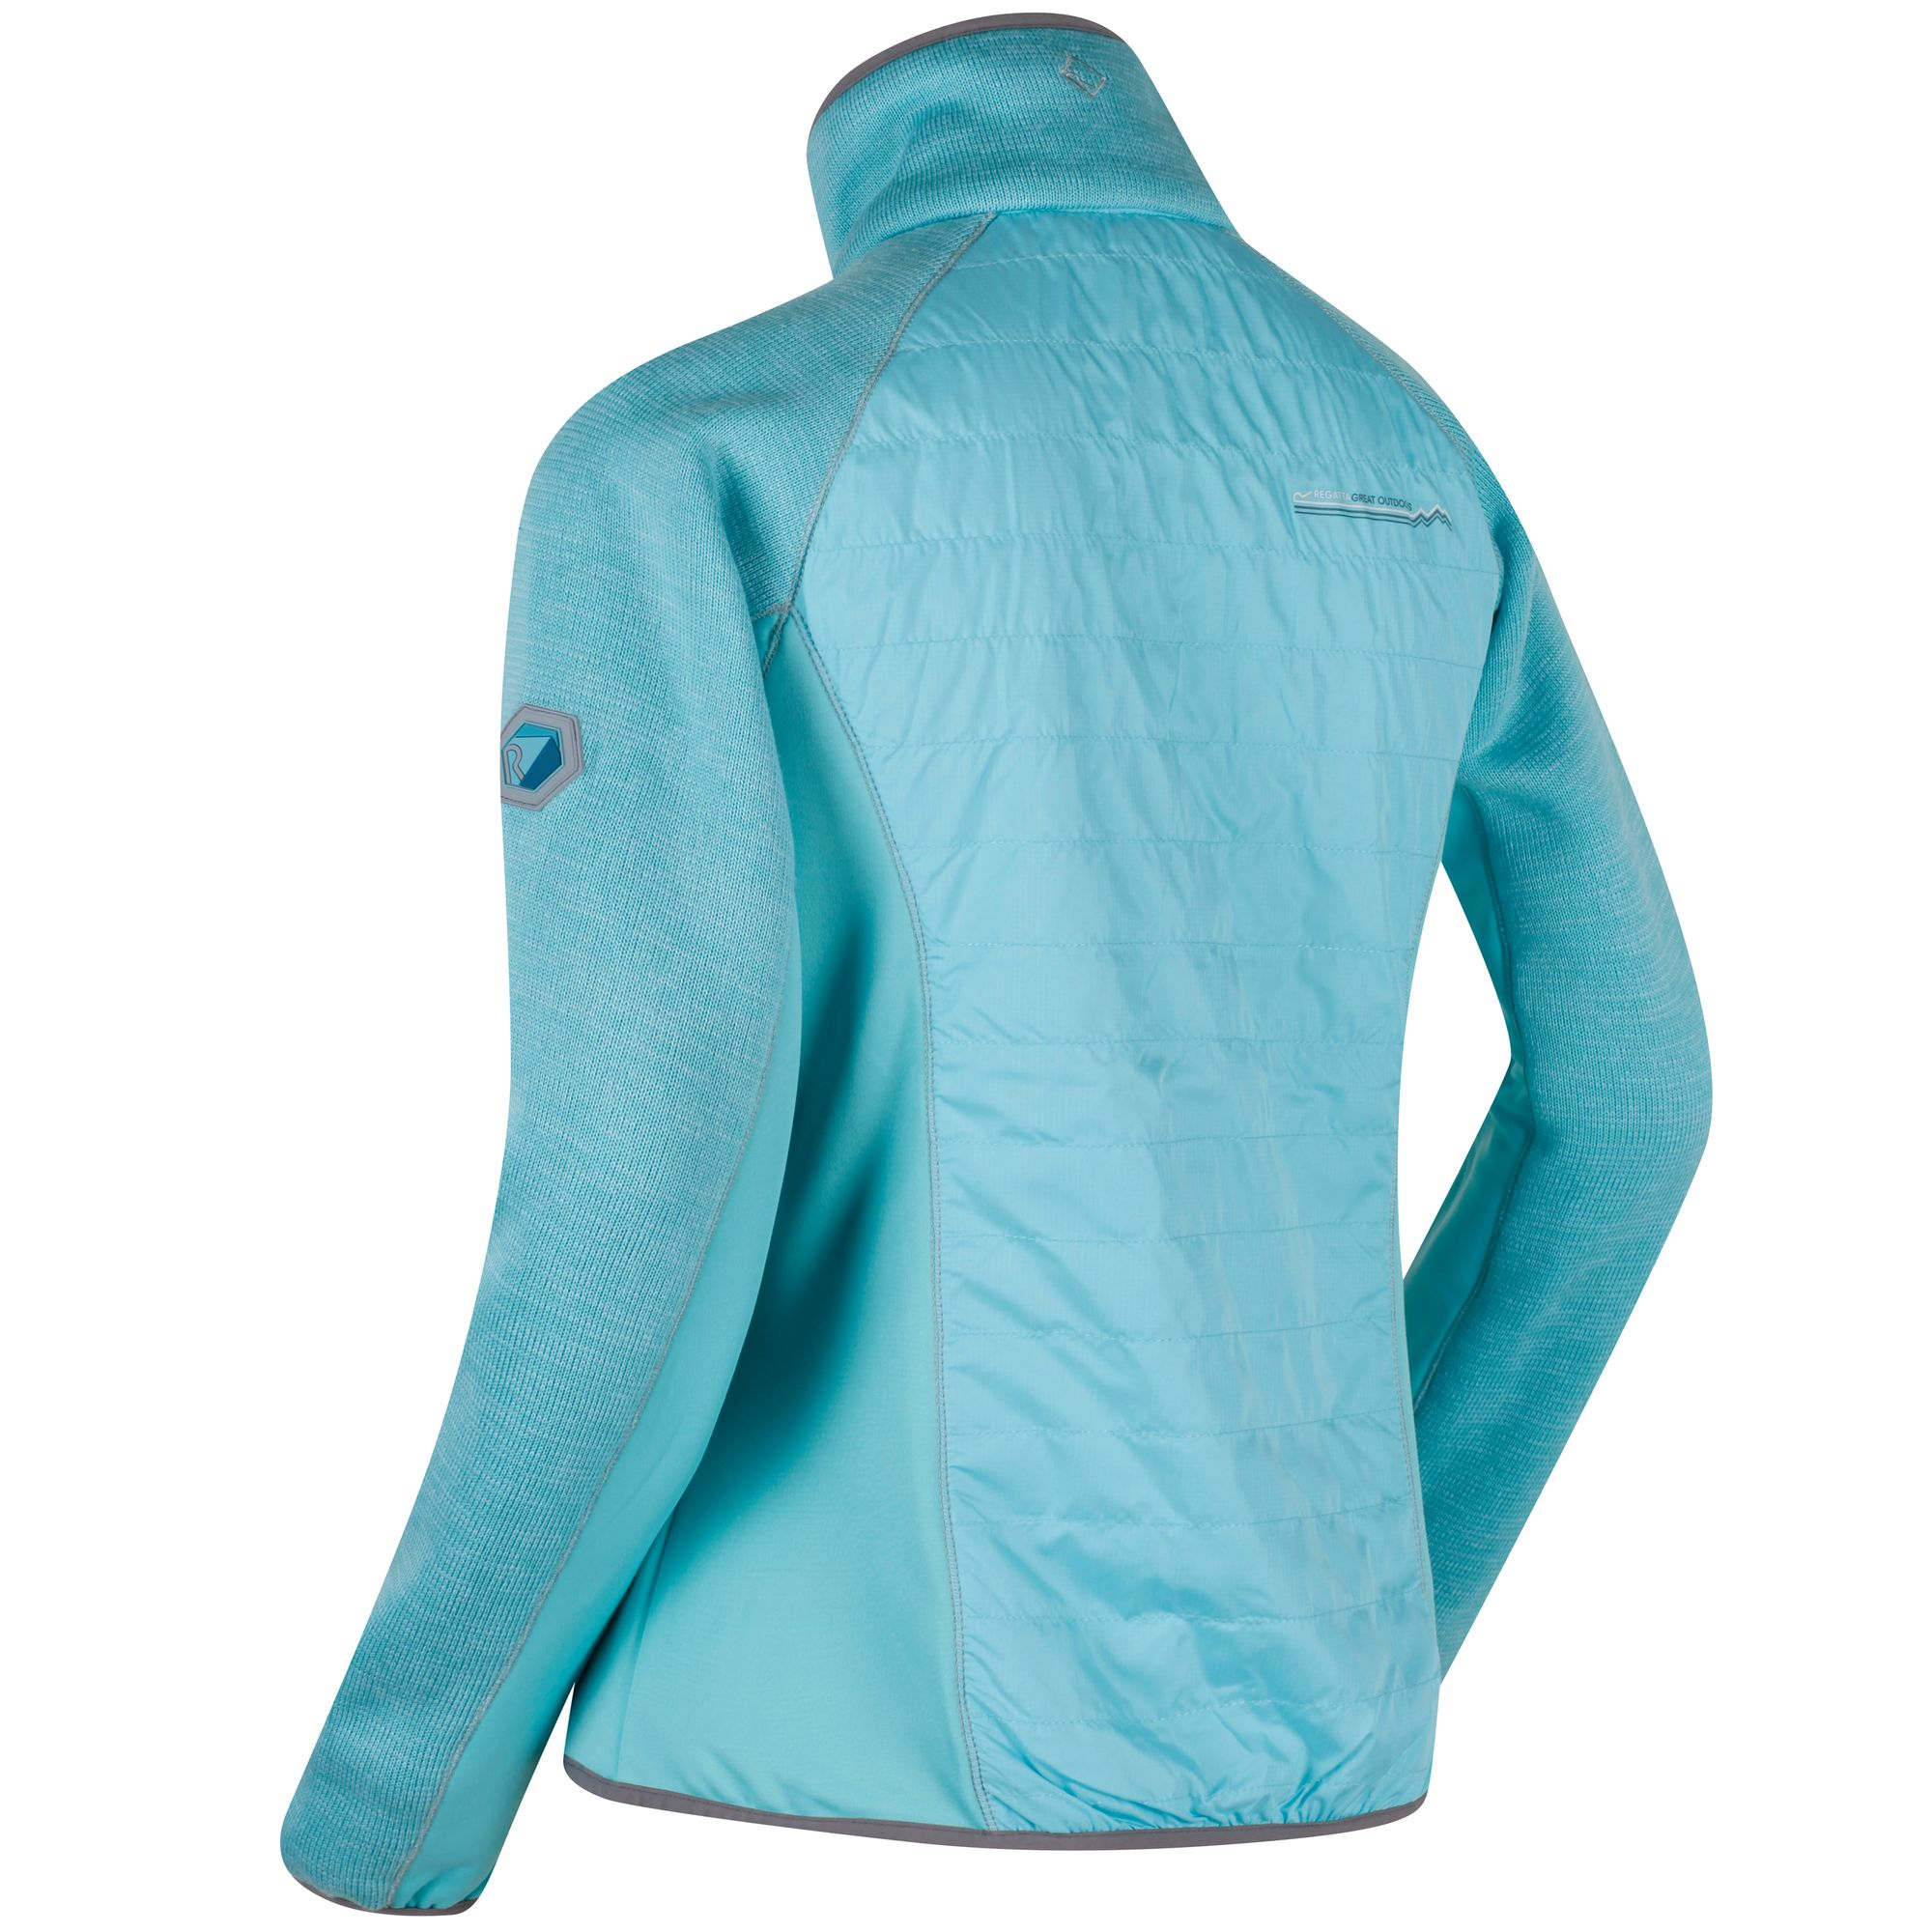 Regatta-Robson-Womens-Knit-Effect-Hybrid-Hiking-Golf-Fleece-Jacket-RRP-70 thumbnail 7